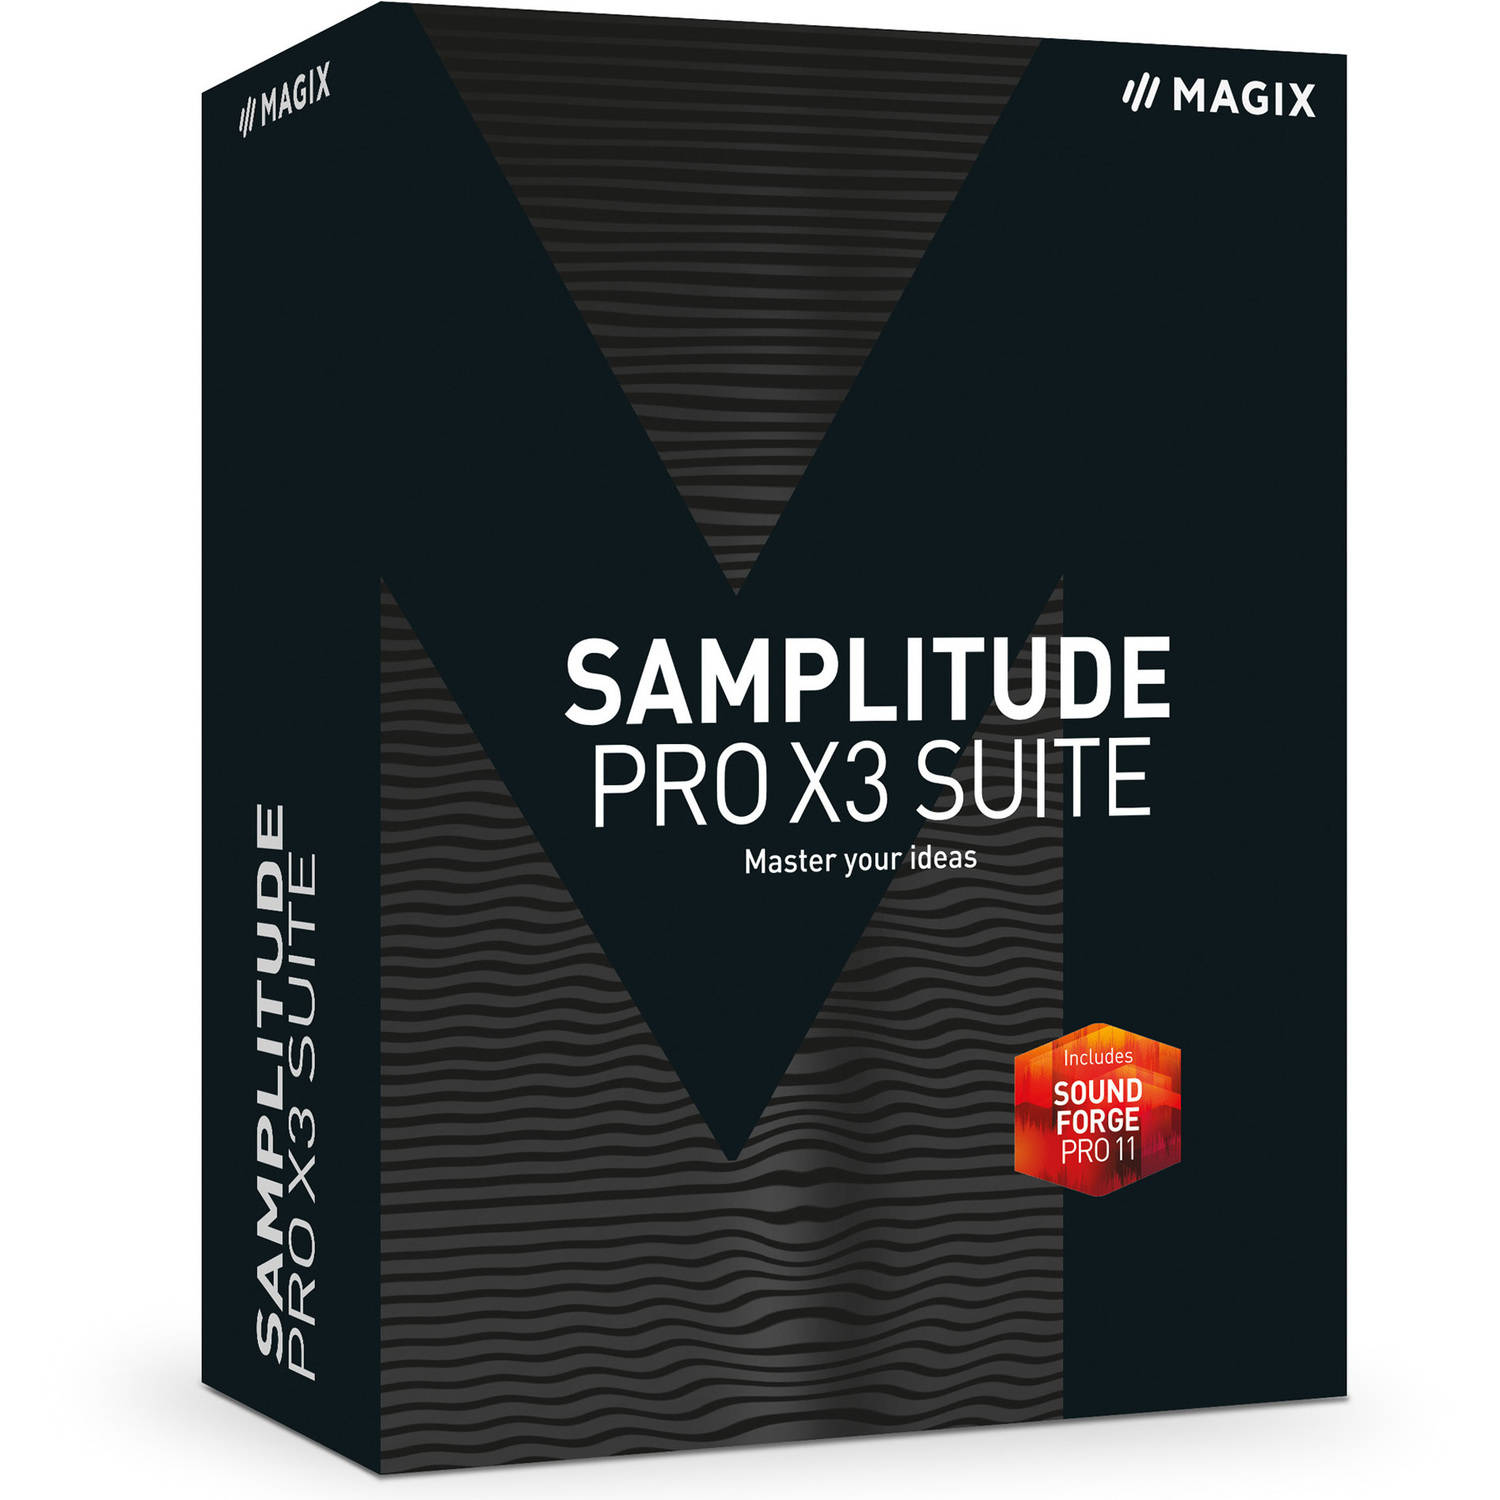 Magix Software ANR006213ESD Samplitude Pro X3 Suite ESD (Digital Code) by Magix Software